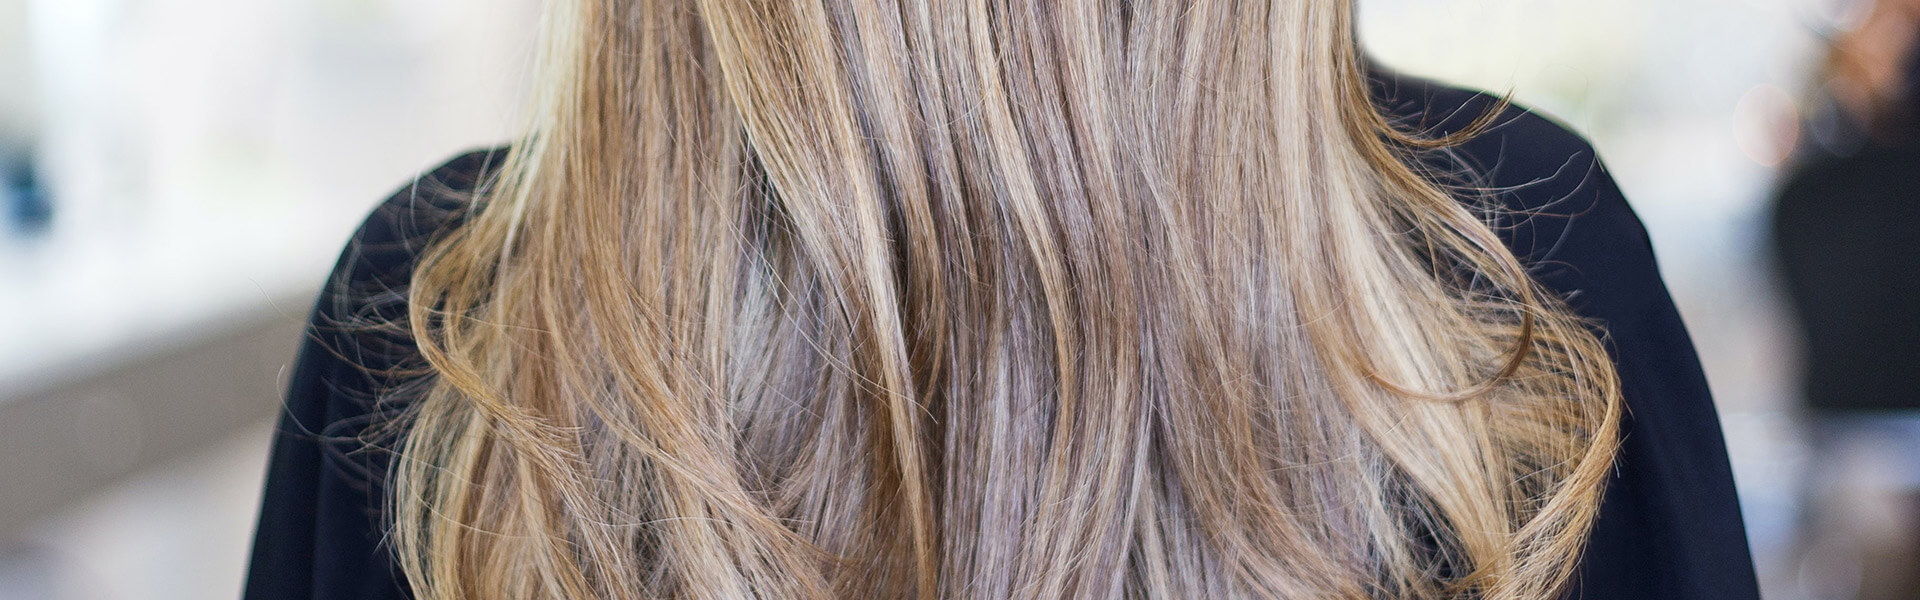 Hairdressers in Burgess Hill, West Sussex